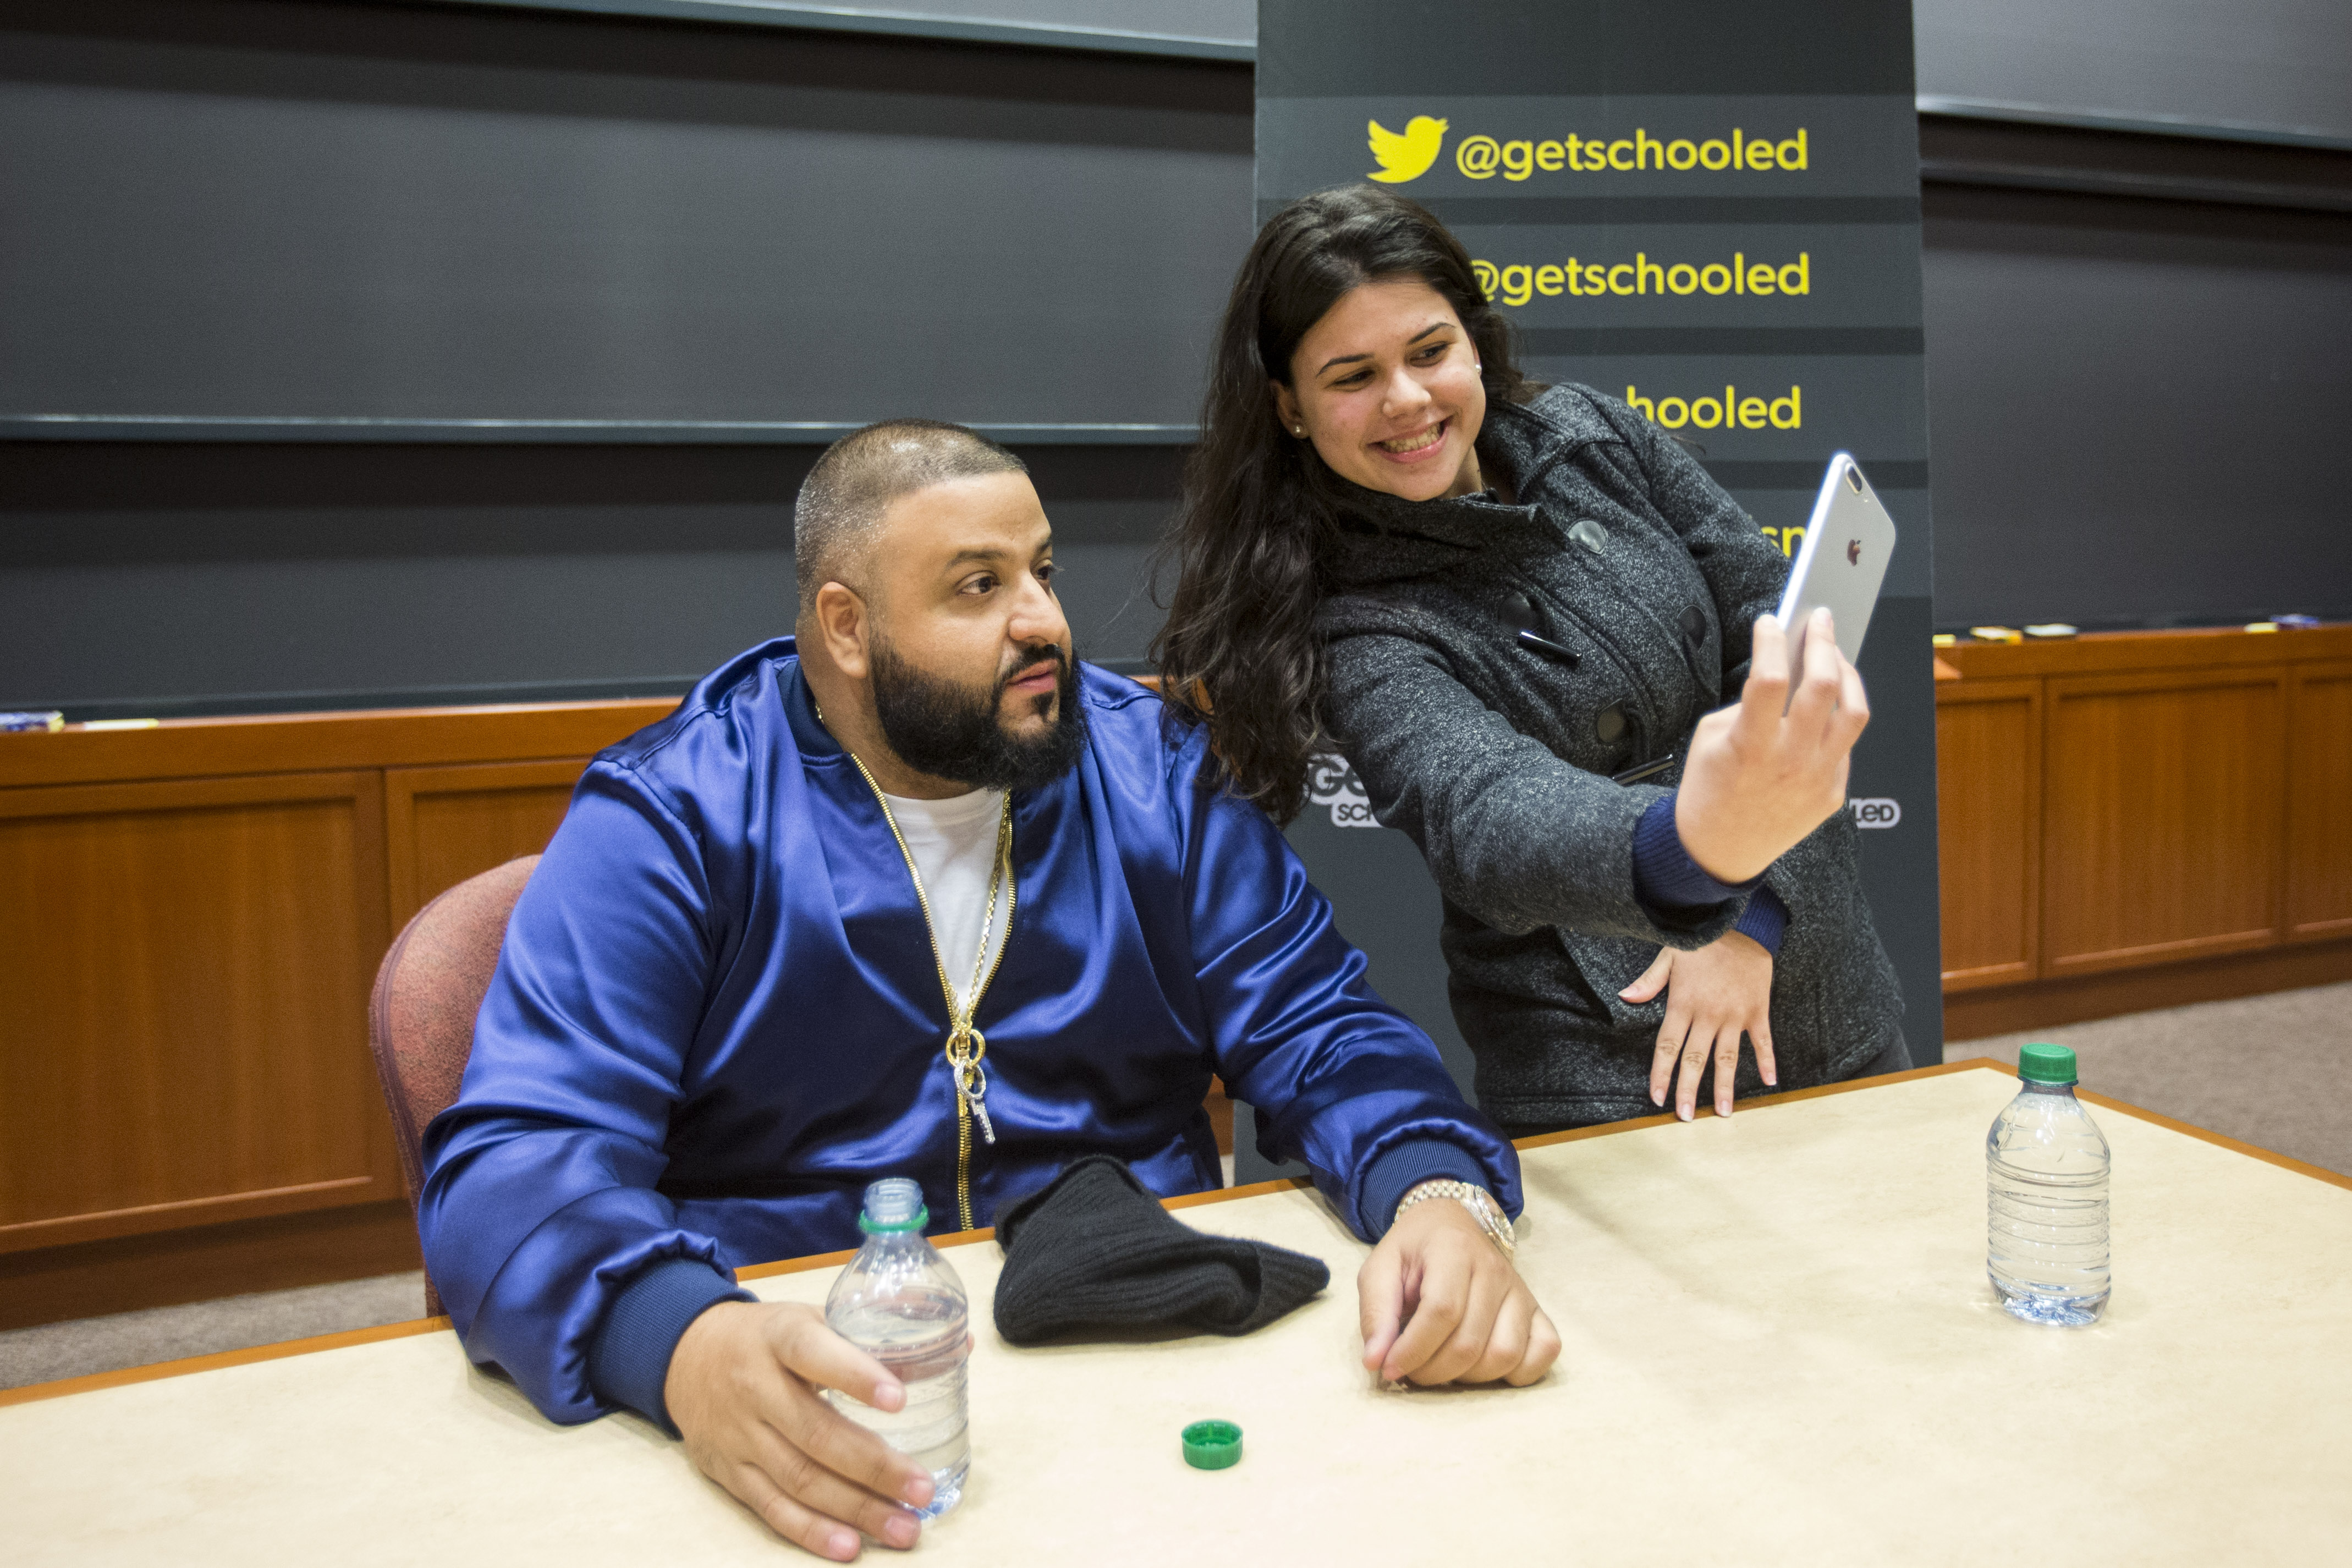 DJ Khaled poses for a selfie with a Harvard student.